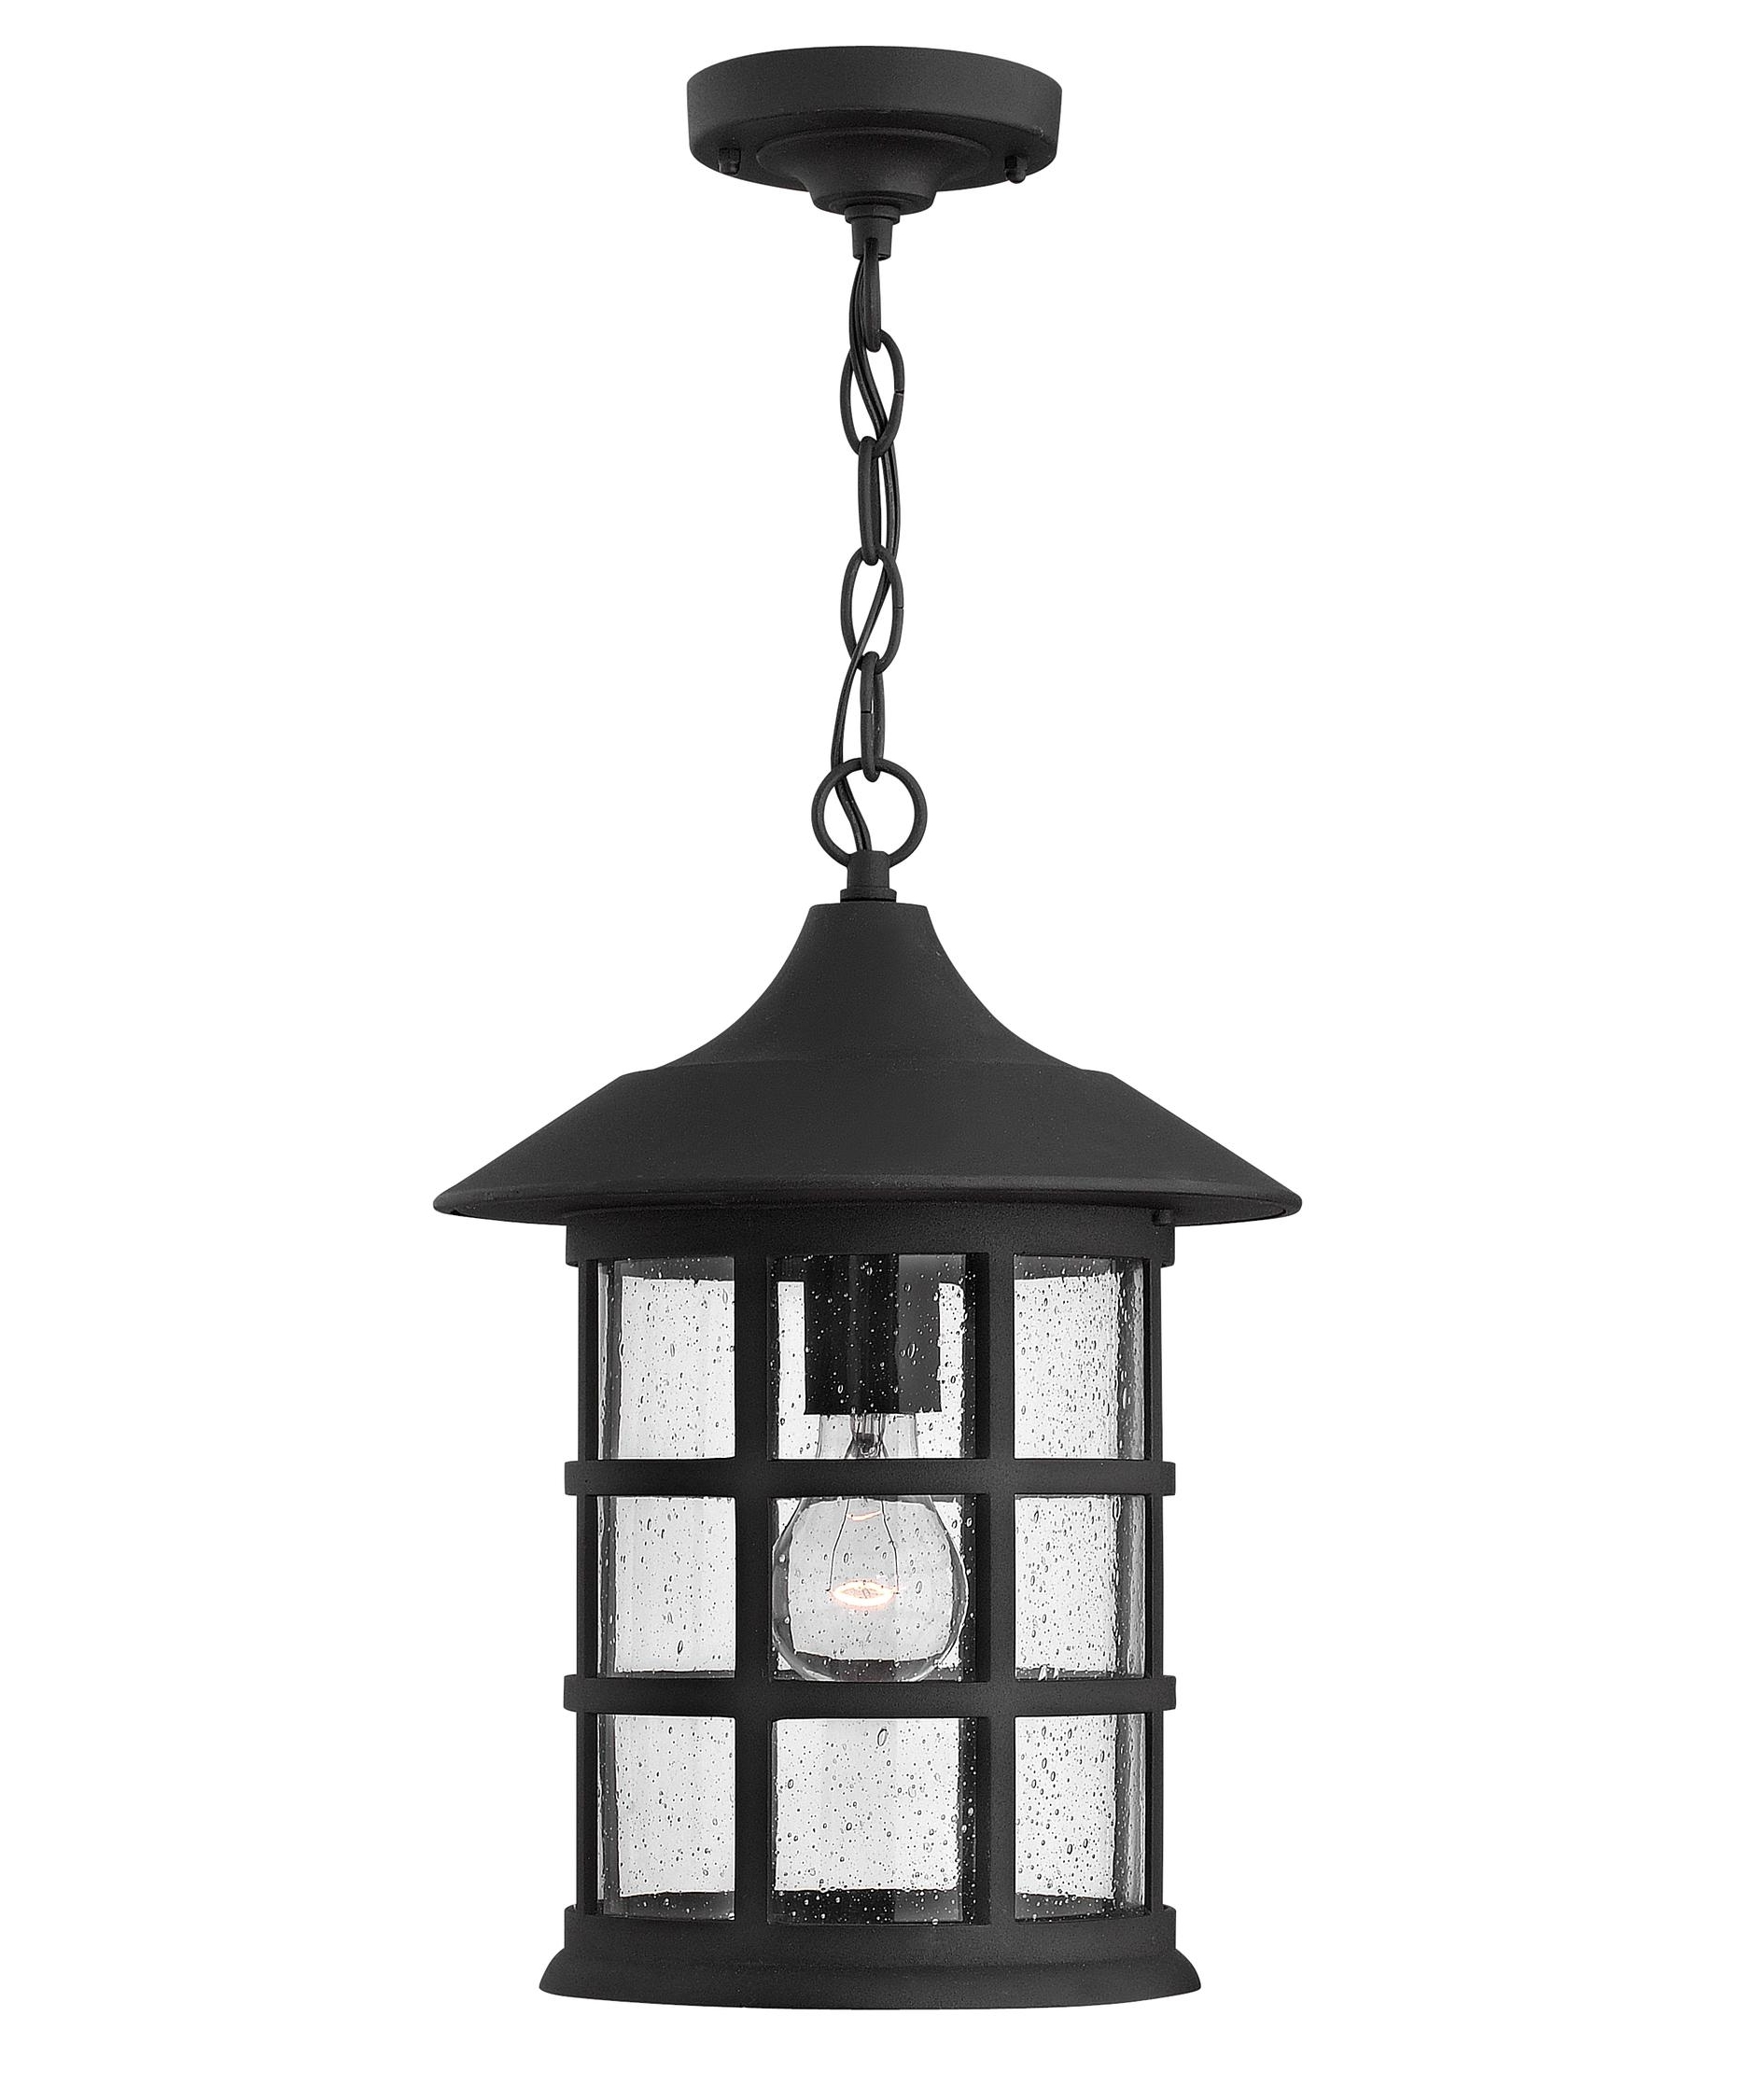 2019 Hinkley Lighting 1802 Freeport 10 Inch Wide 1 Light Outdoor Hanging Pertaining To Outdoor Hanging Lanterns For Candles (View 10 of 20)